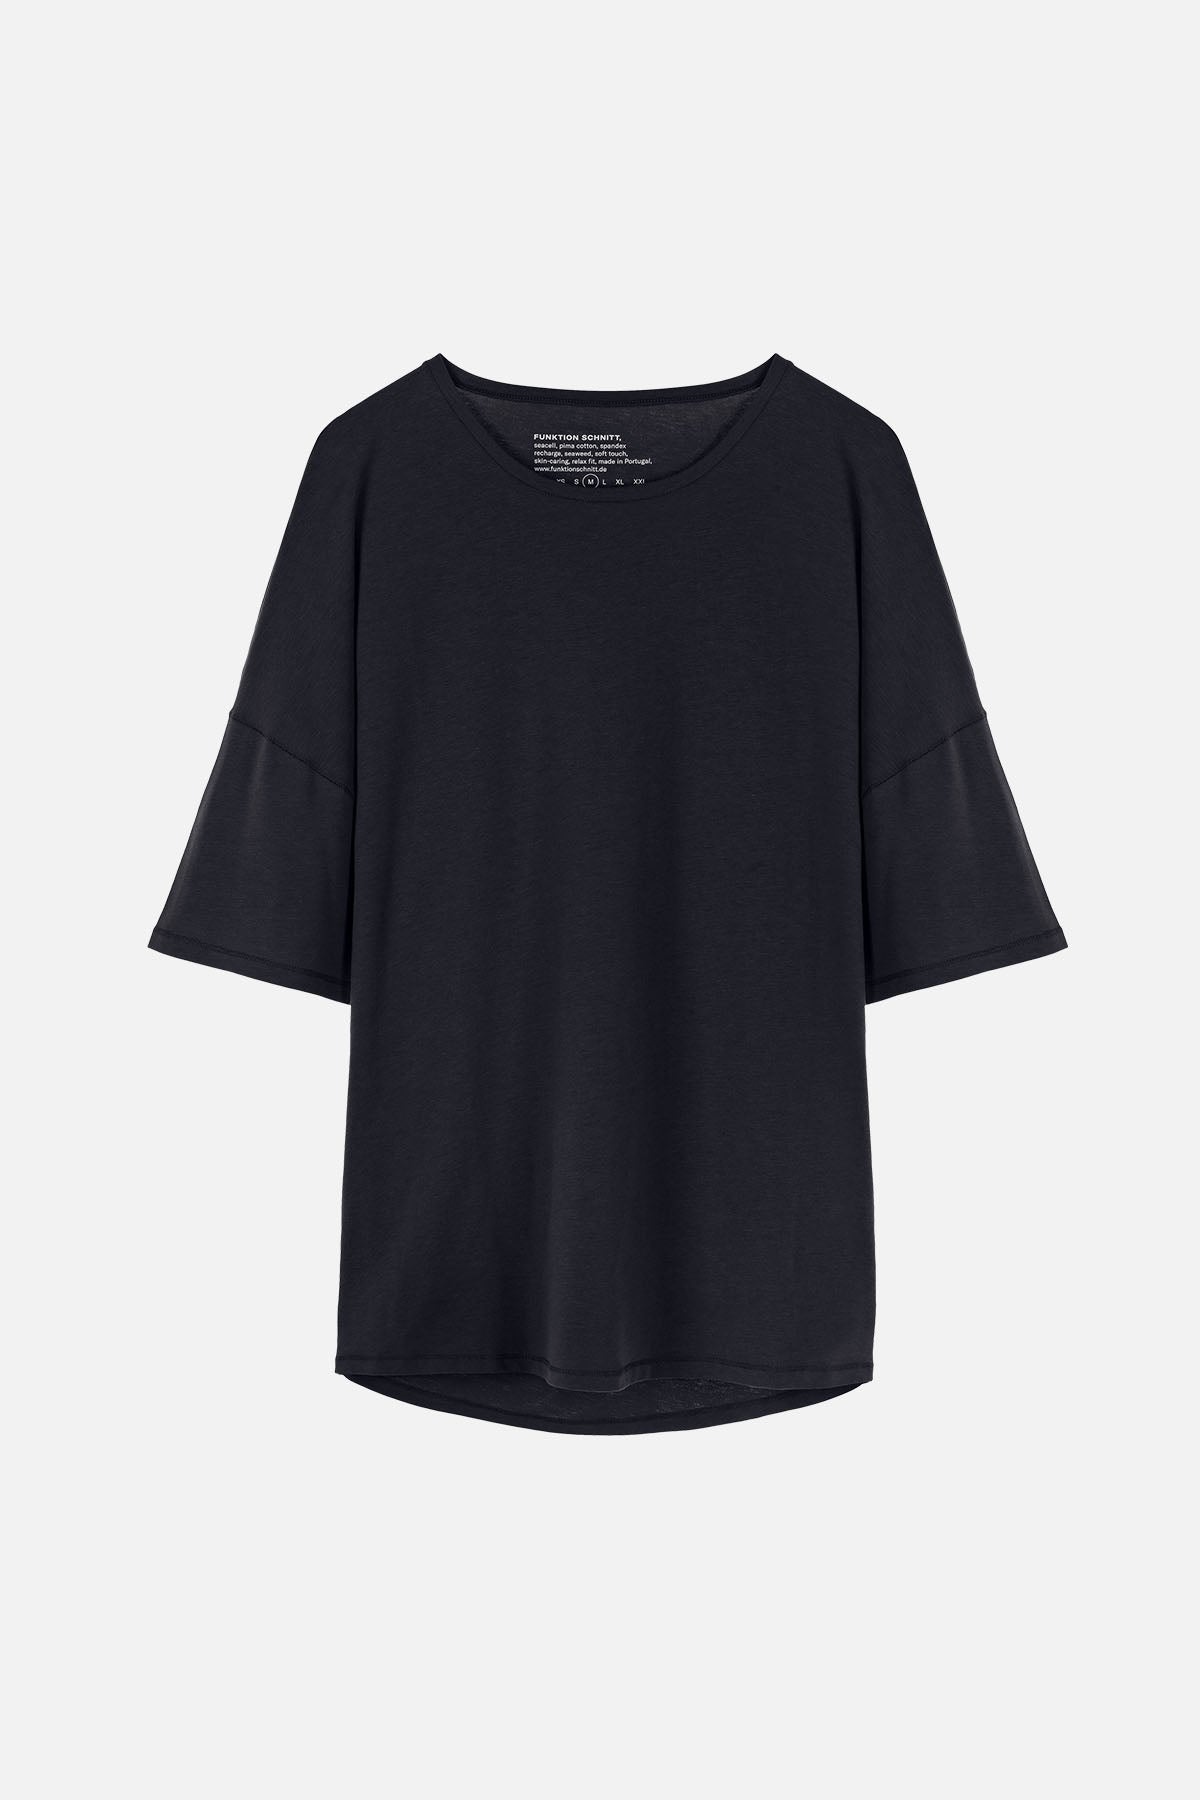 MOVE T-Shirt in SeaCell schwarz Passform relaxed Freisteller